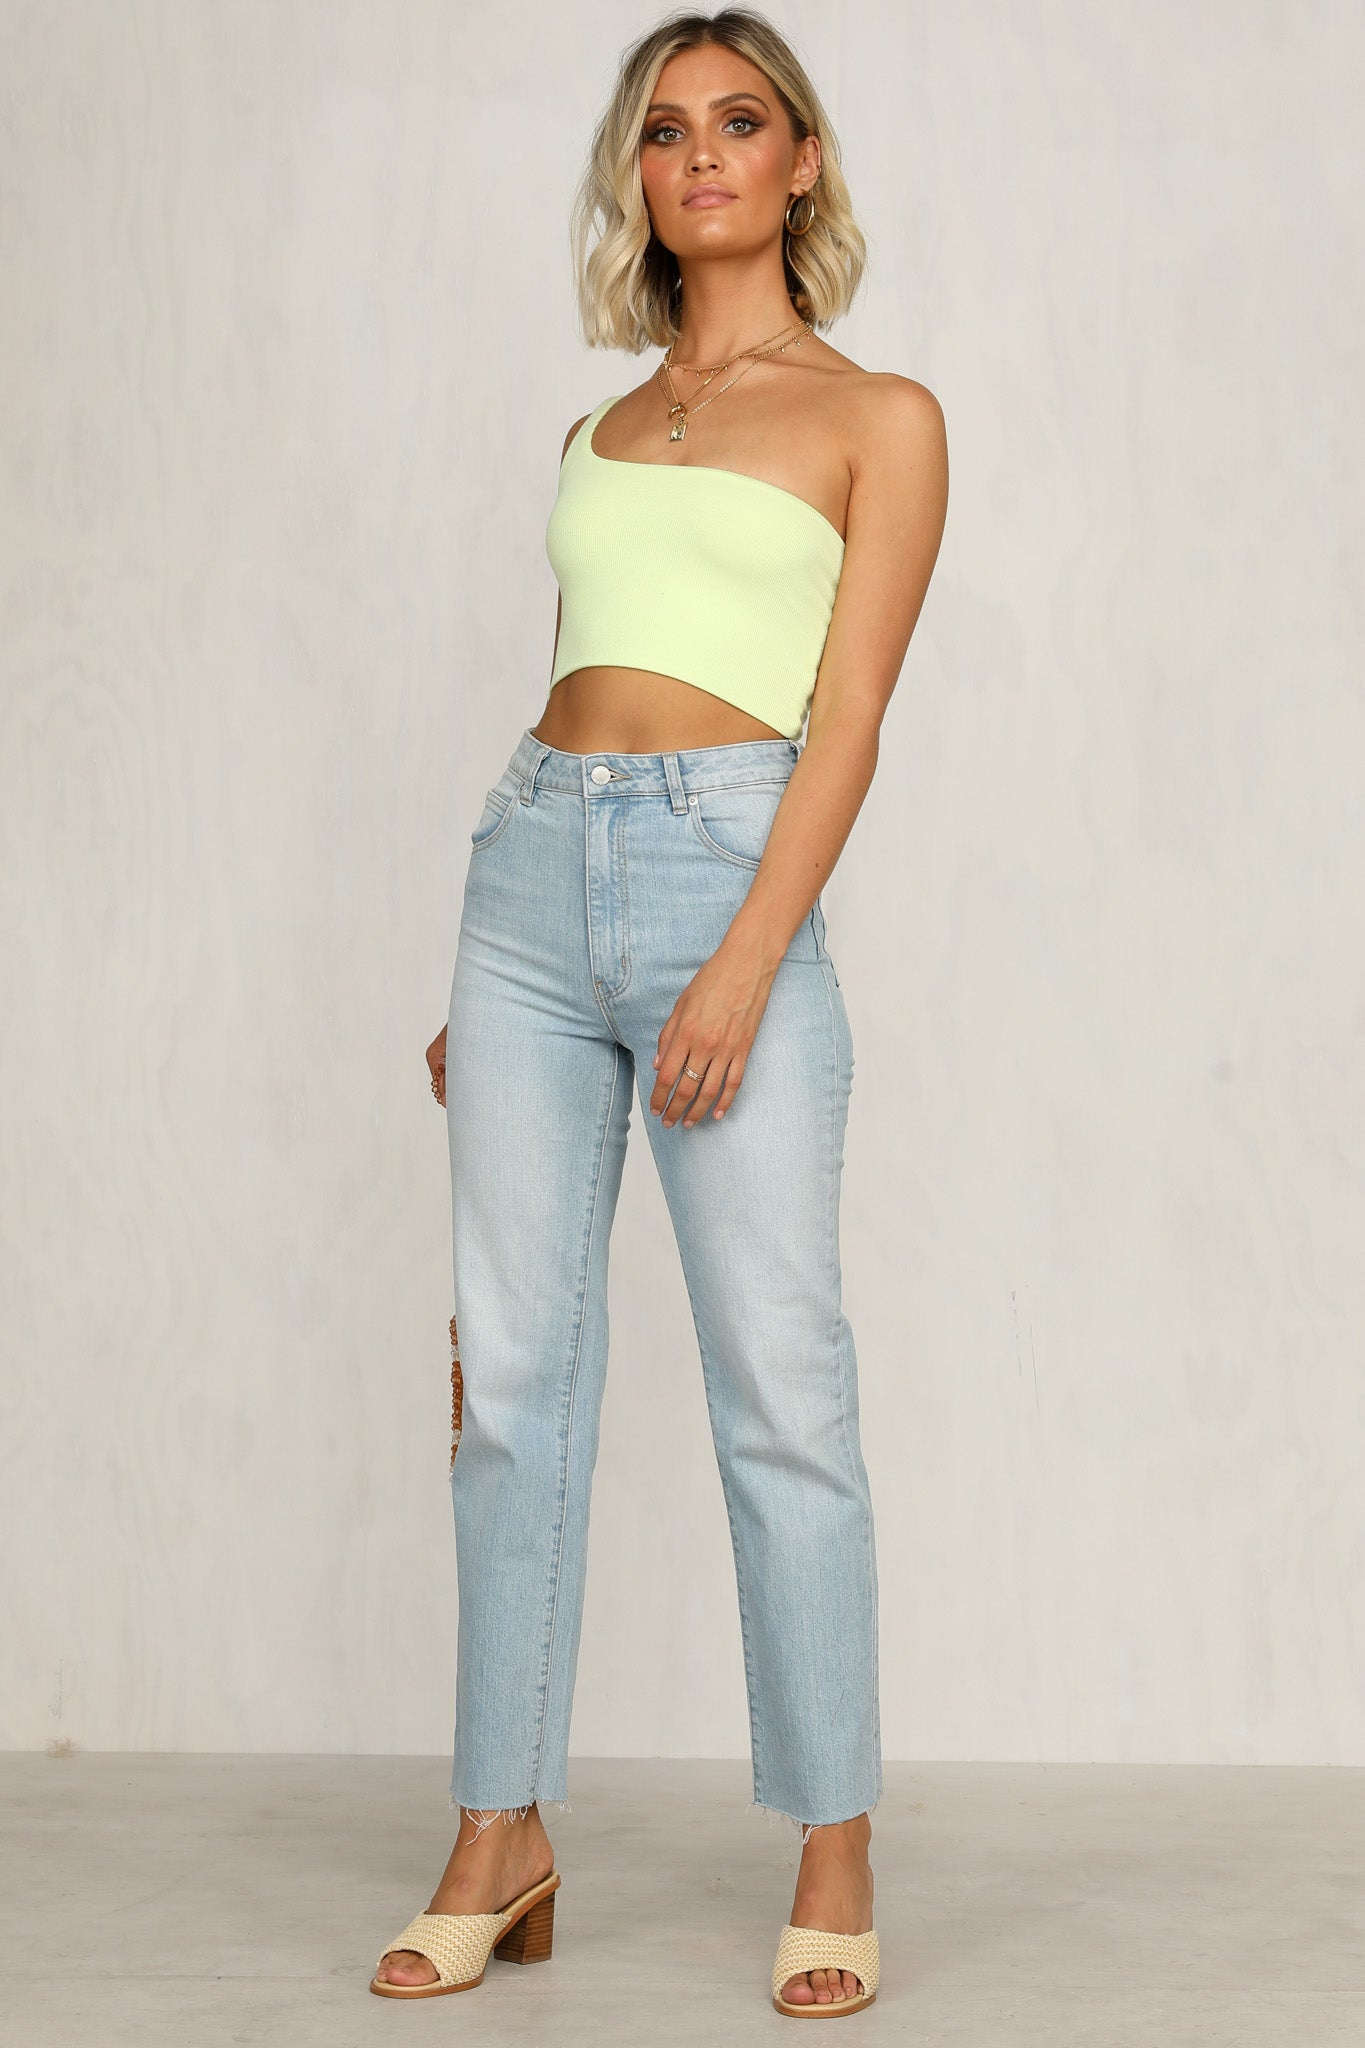 Not So Basic Top (Lime)